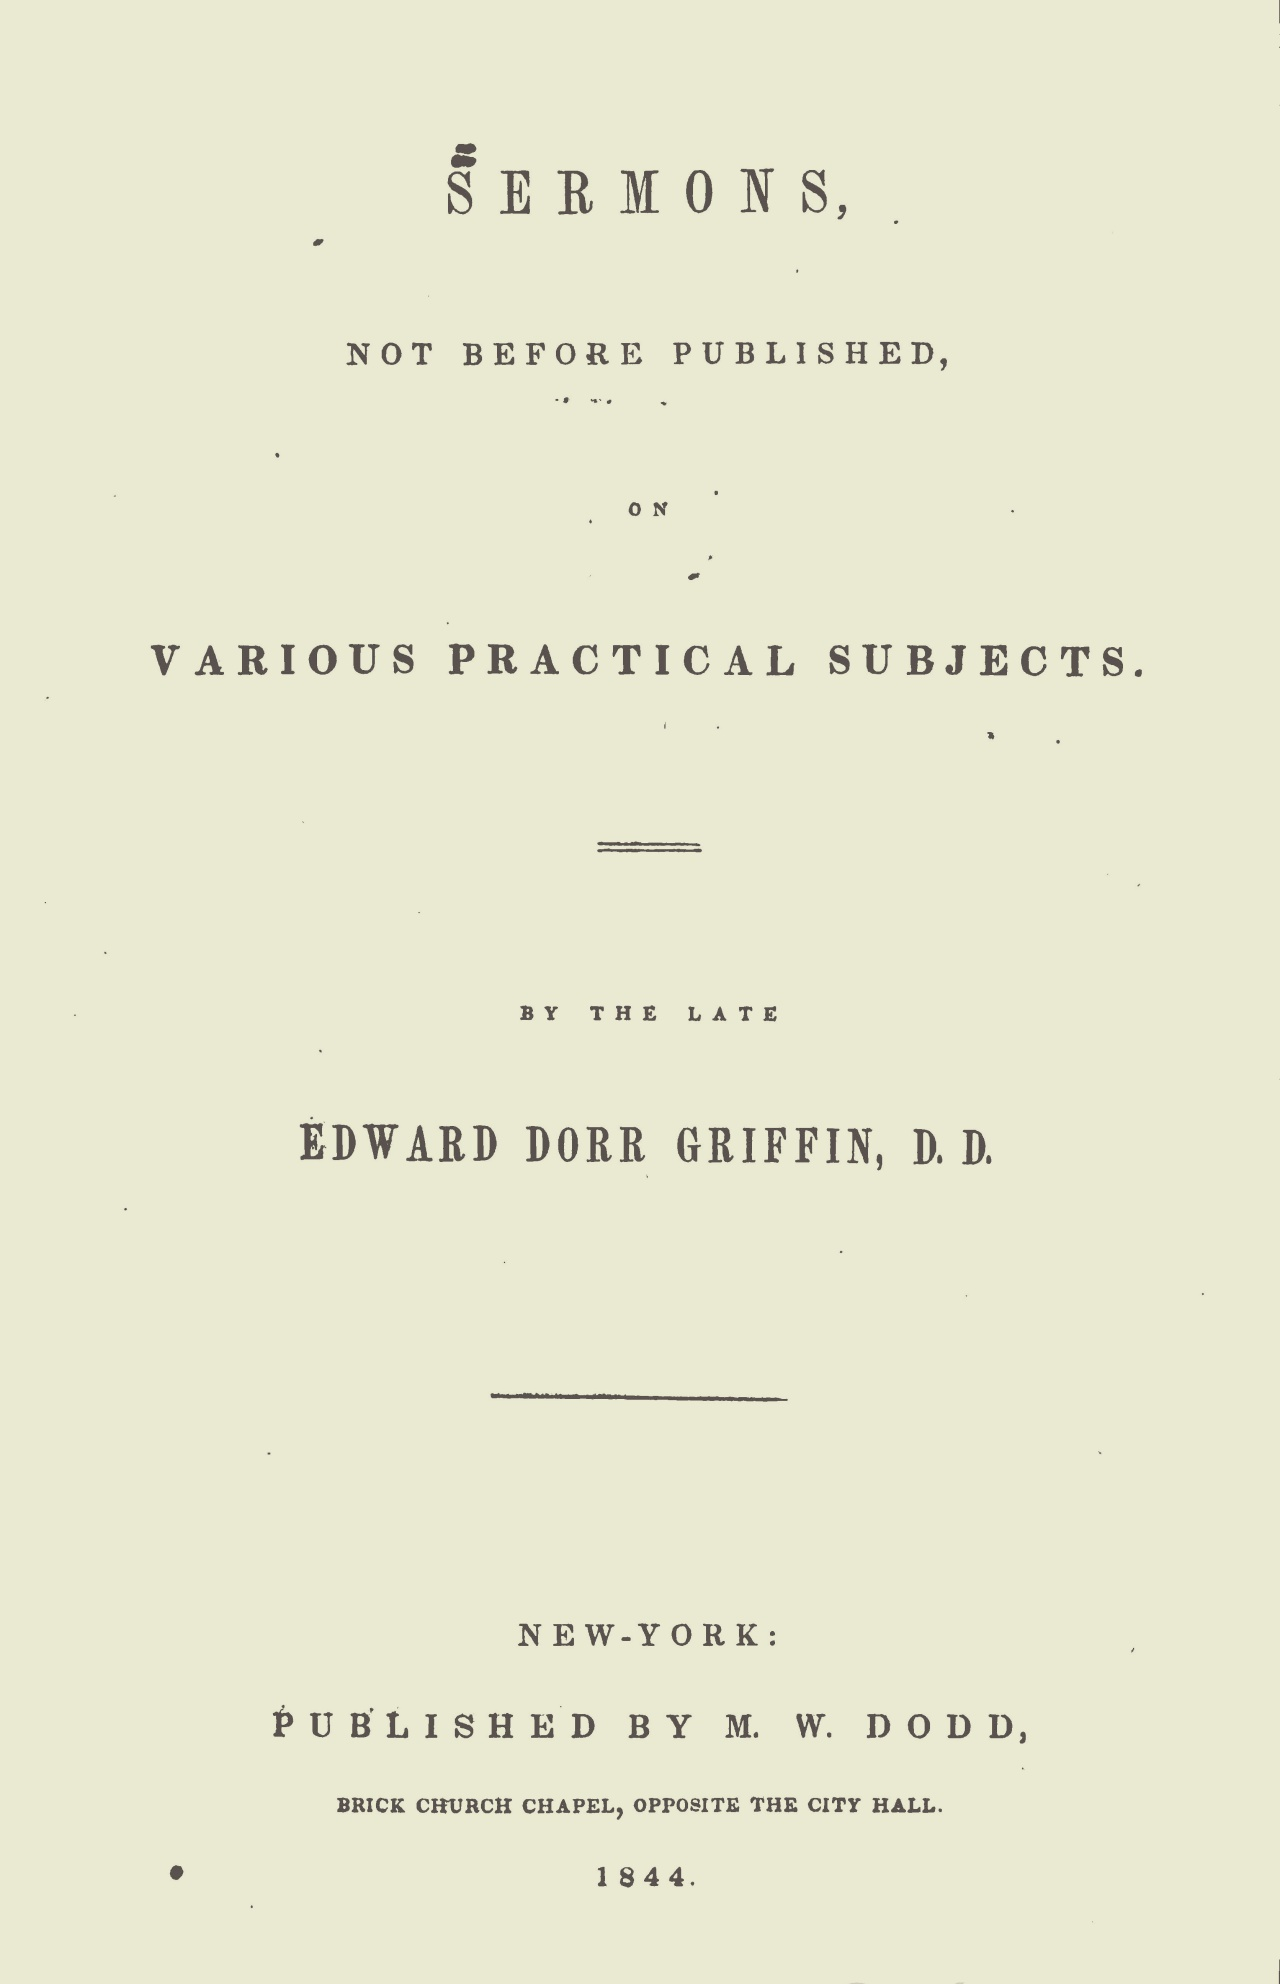 Griffin, Edward Dorr, Sixty Sermons on Practical Subjects Title Page.jpg